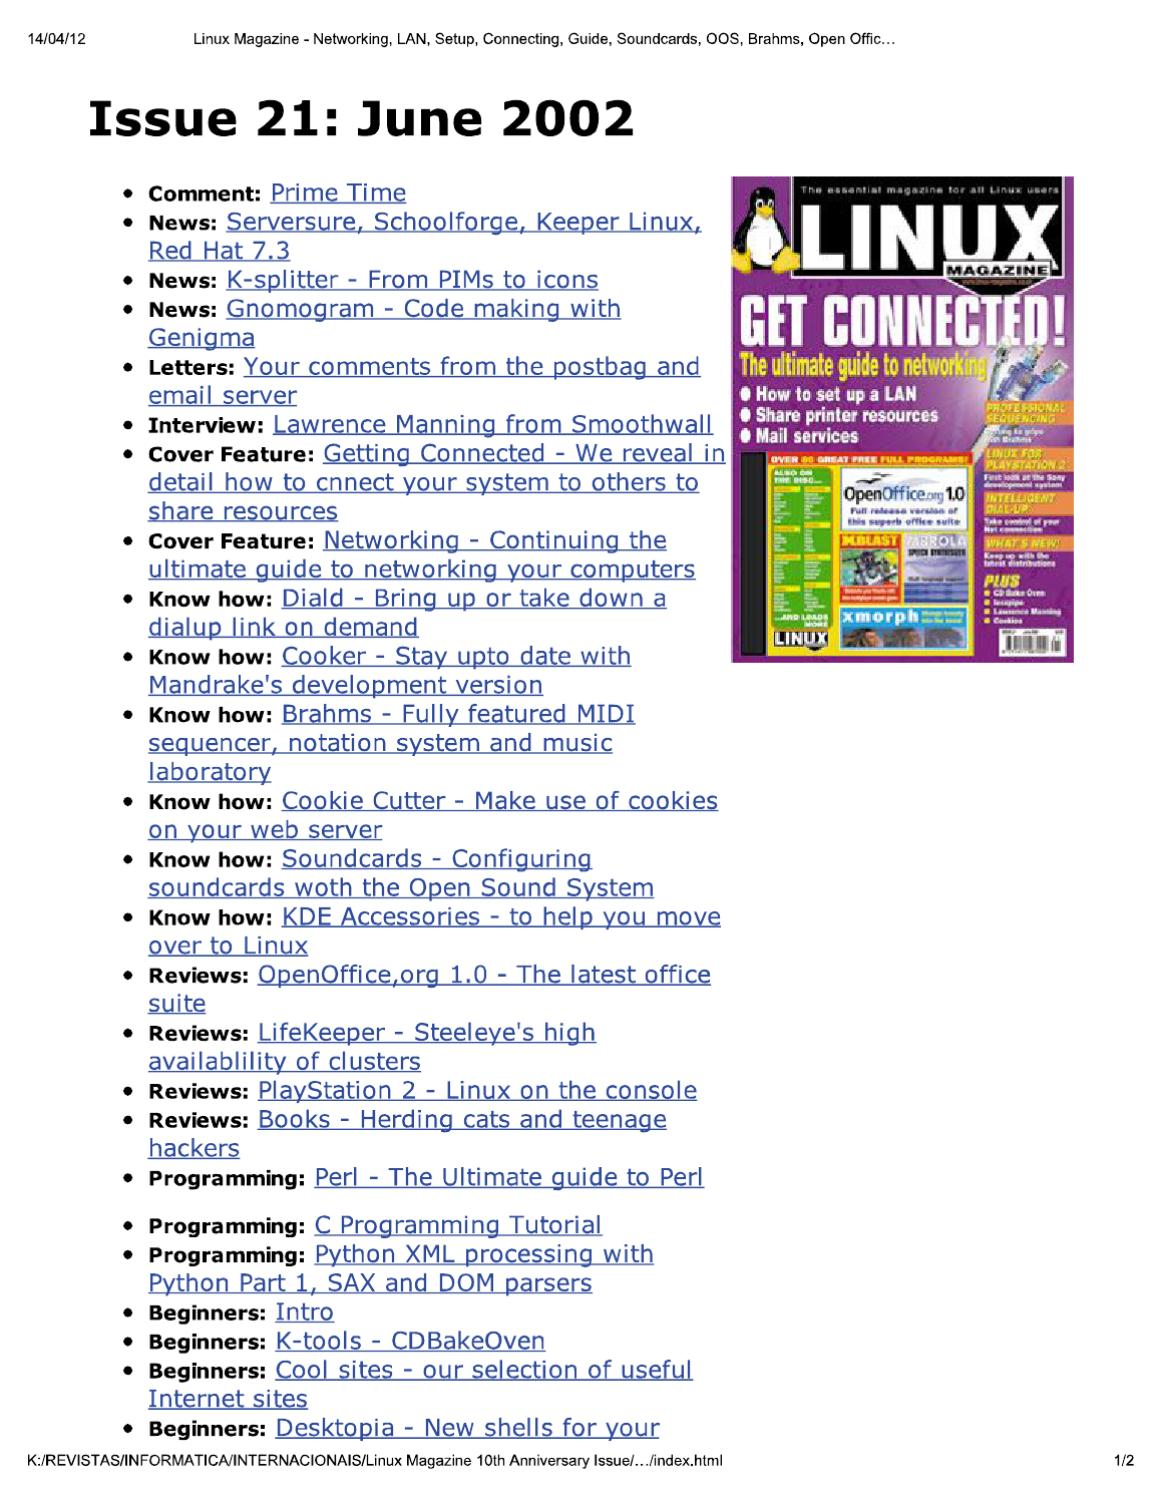 Linux: a selection of sites